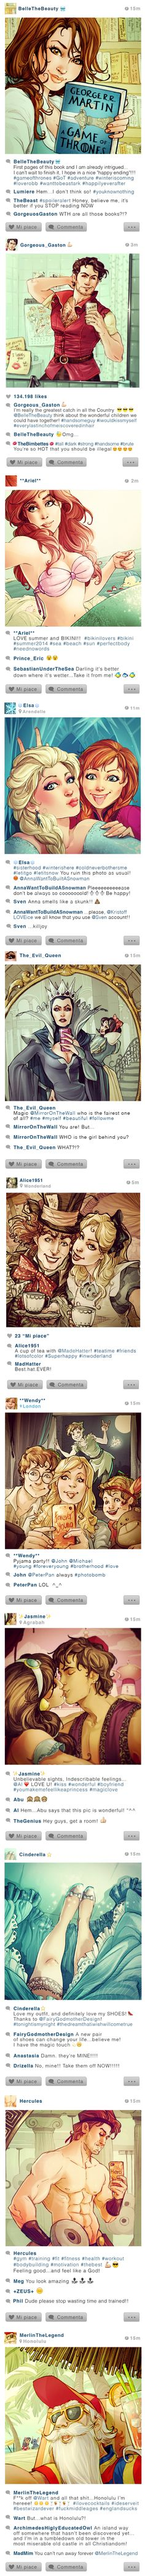 What if Disney characters had Instagram accounts? They'd probably post a hell of a lot of seflies (and you know Gaston would be taking bathroom shots flexing his guns). The crazy-talented DeviantArt artist Simona Bonafini created these illustrations imagining what our favorite Disney princesses, princes, and villains would look like on the photo app, even incorporating uberaccurate comments and usernames.